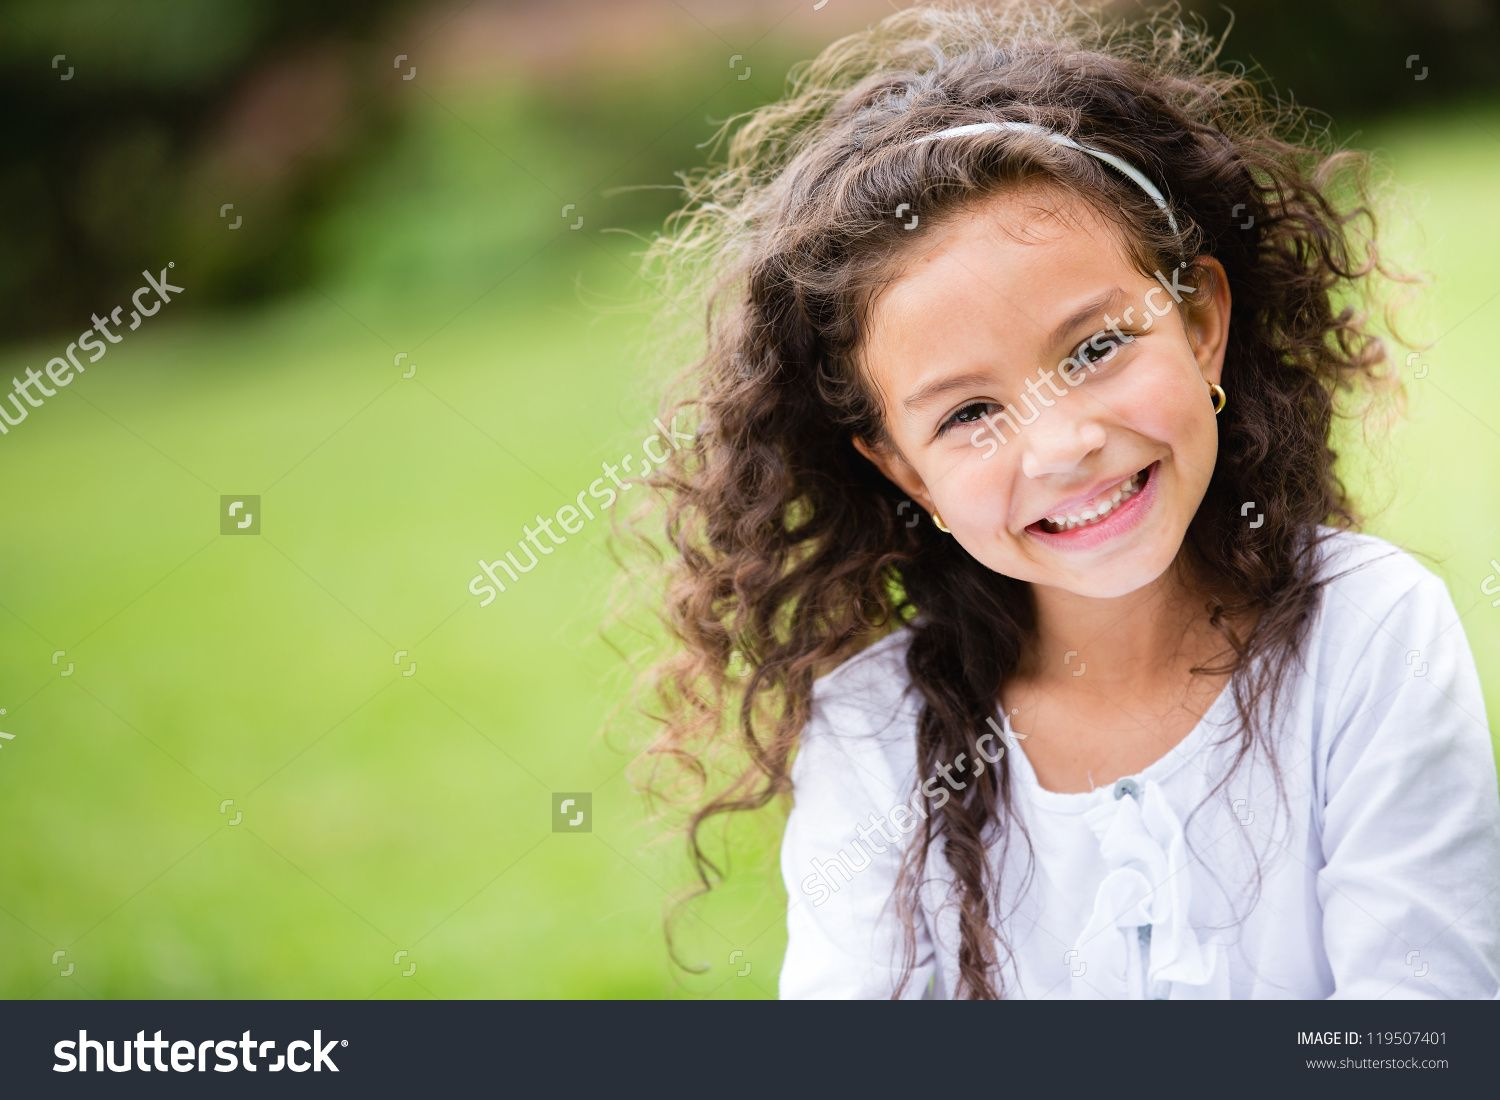 little purenudism   Image result for little girl photo